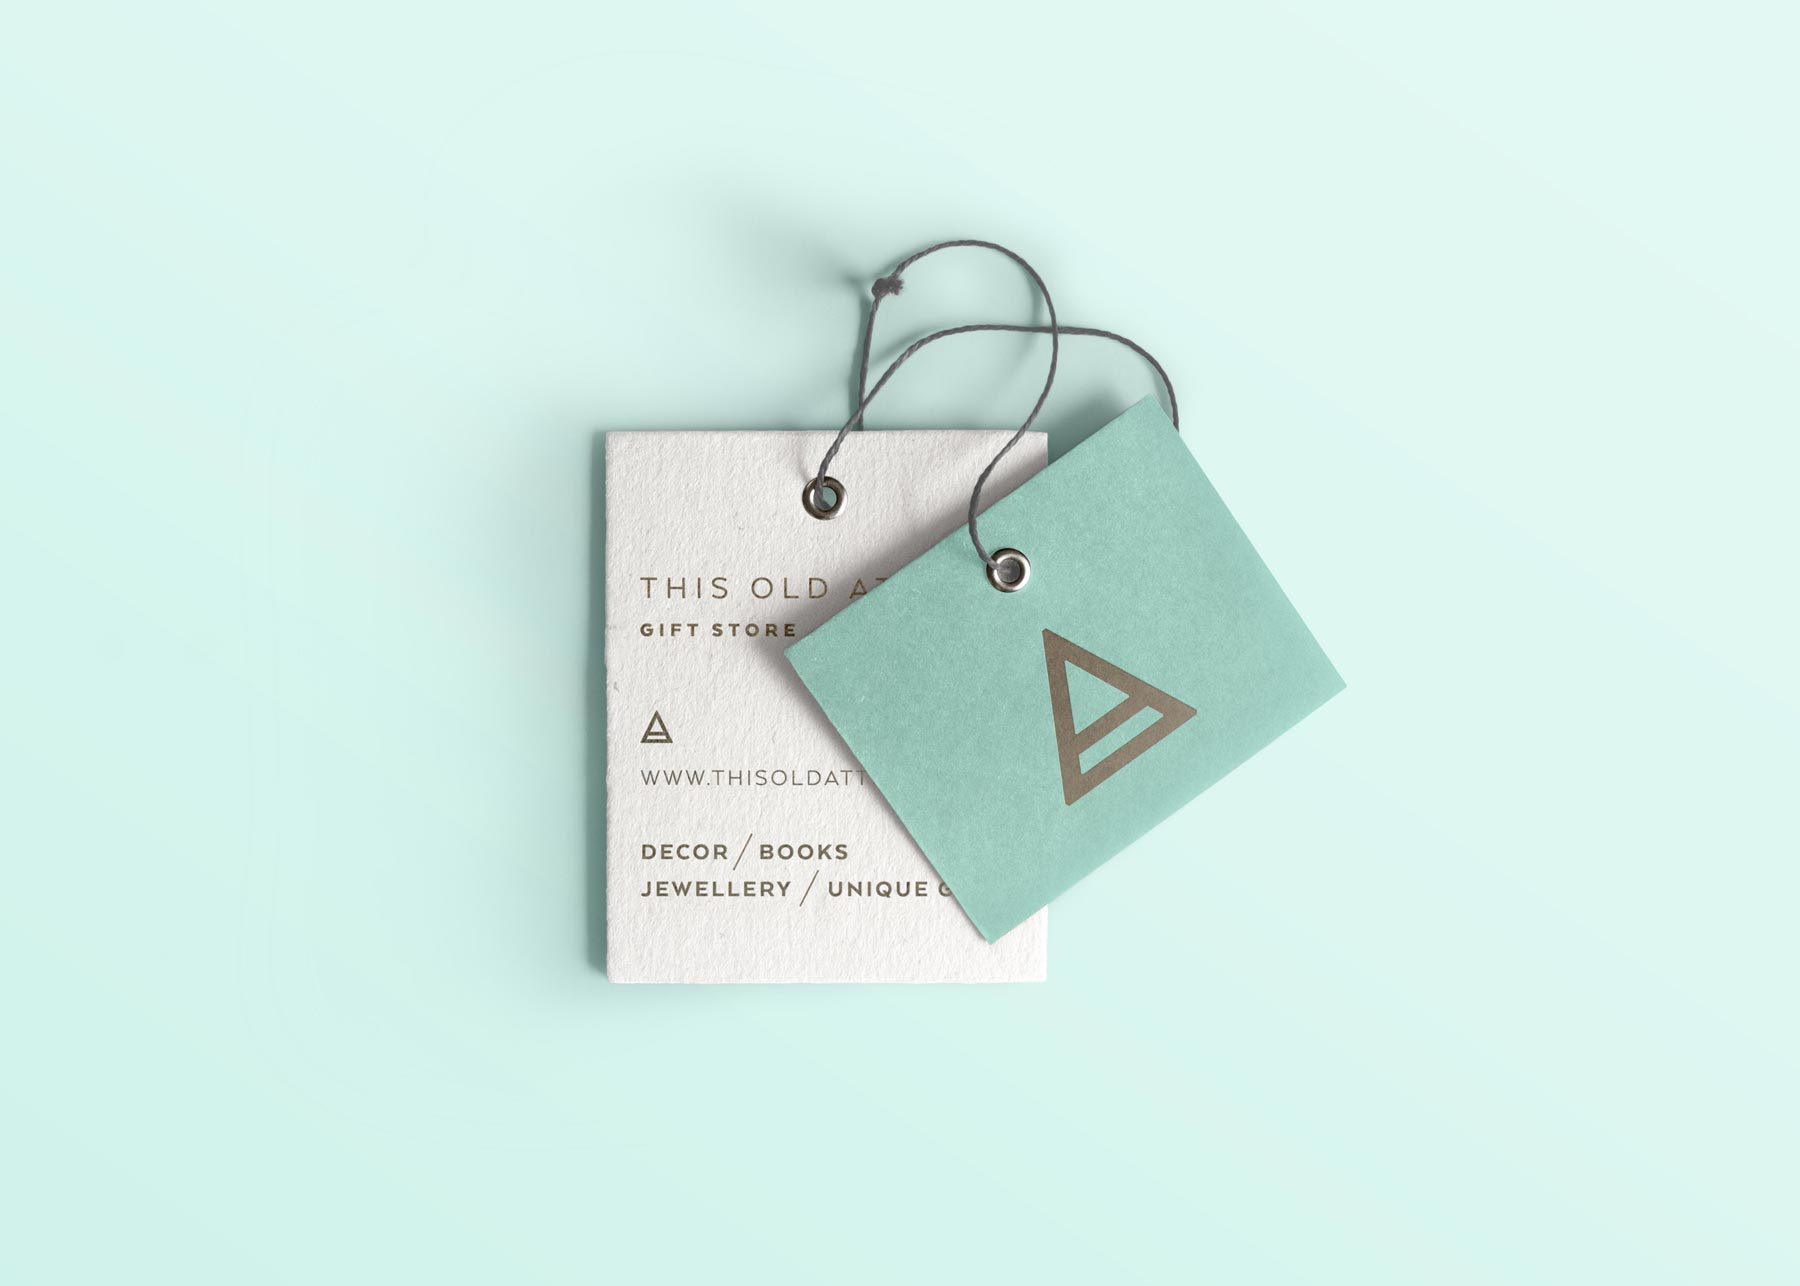 This Old Attic swing tags, designed by Lisa Furze